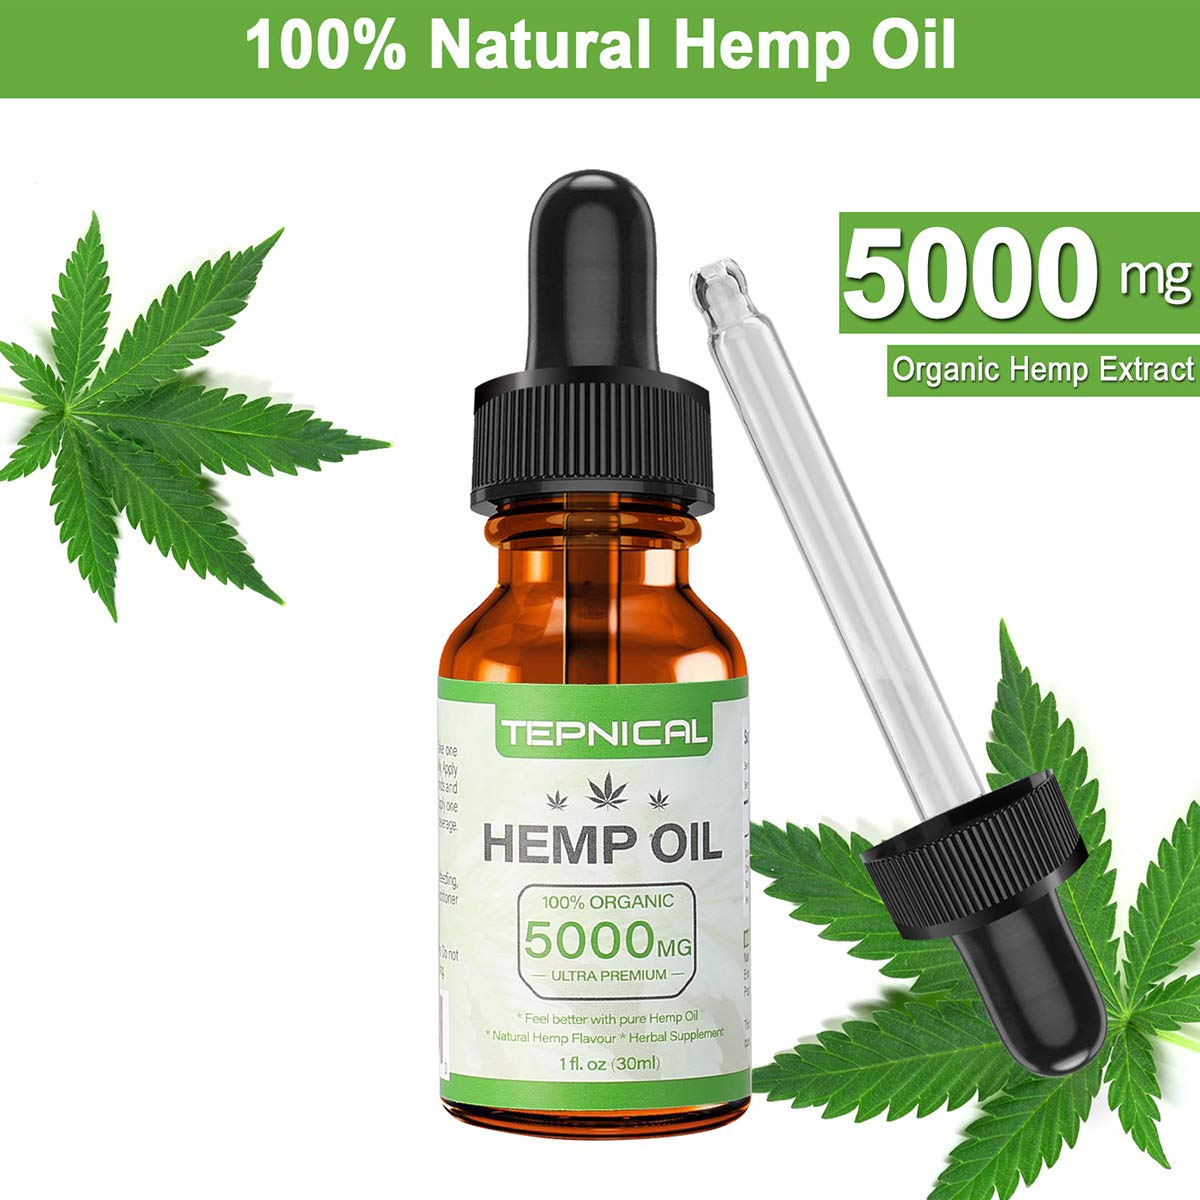 Hemp Oil with 5000mg of Organic Hemp Extract for Pain, Anxiety & Stress Relief - 100% Natural Hemp Oil Drops, Helps with Sleep, Skin & Hair by TEPNICAL